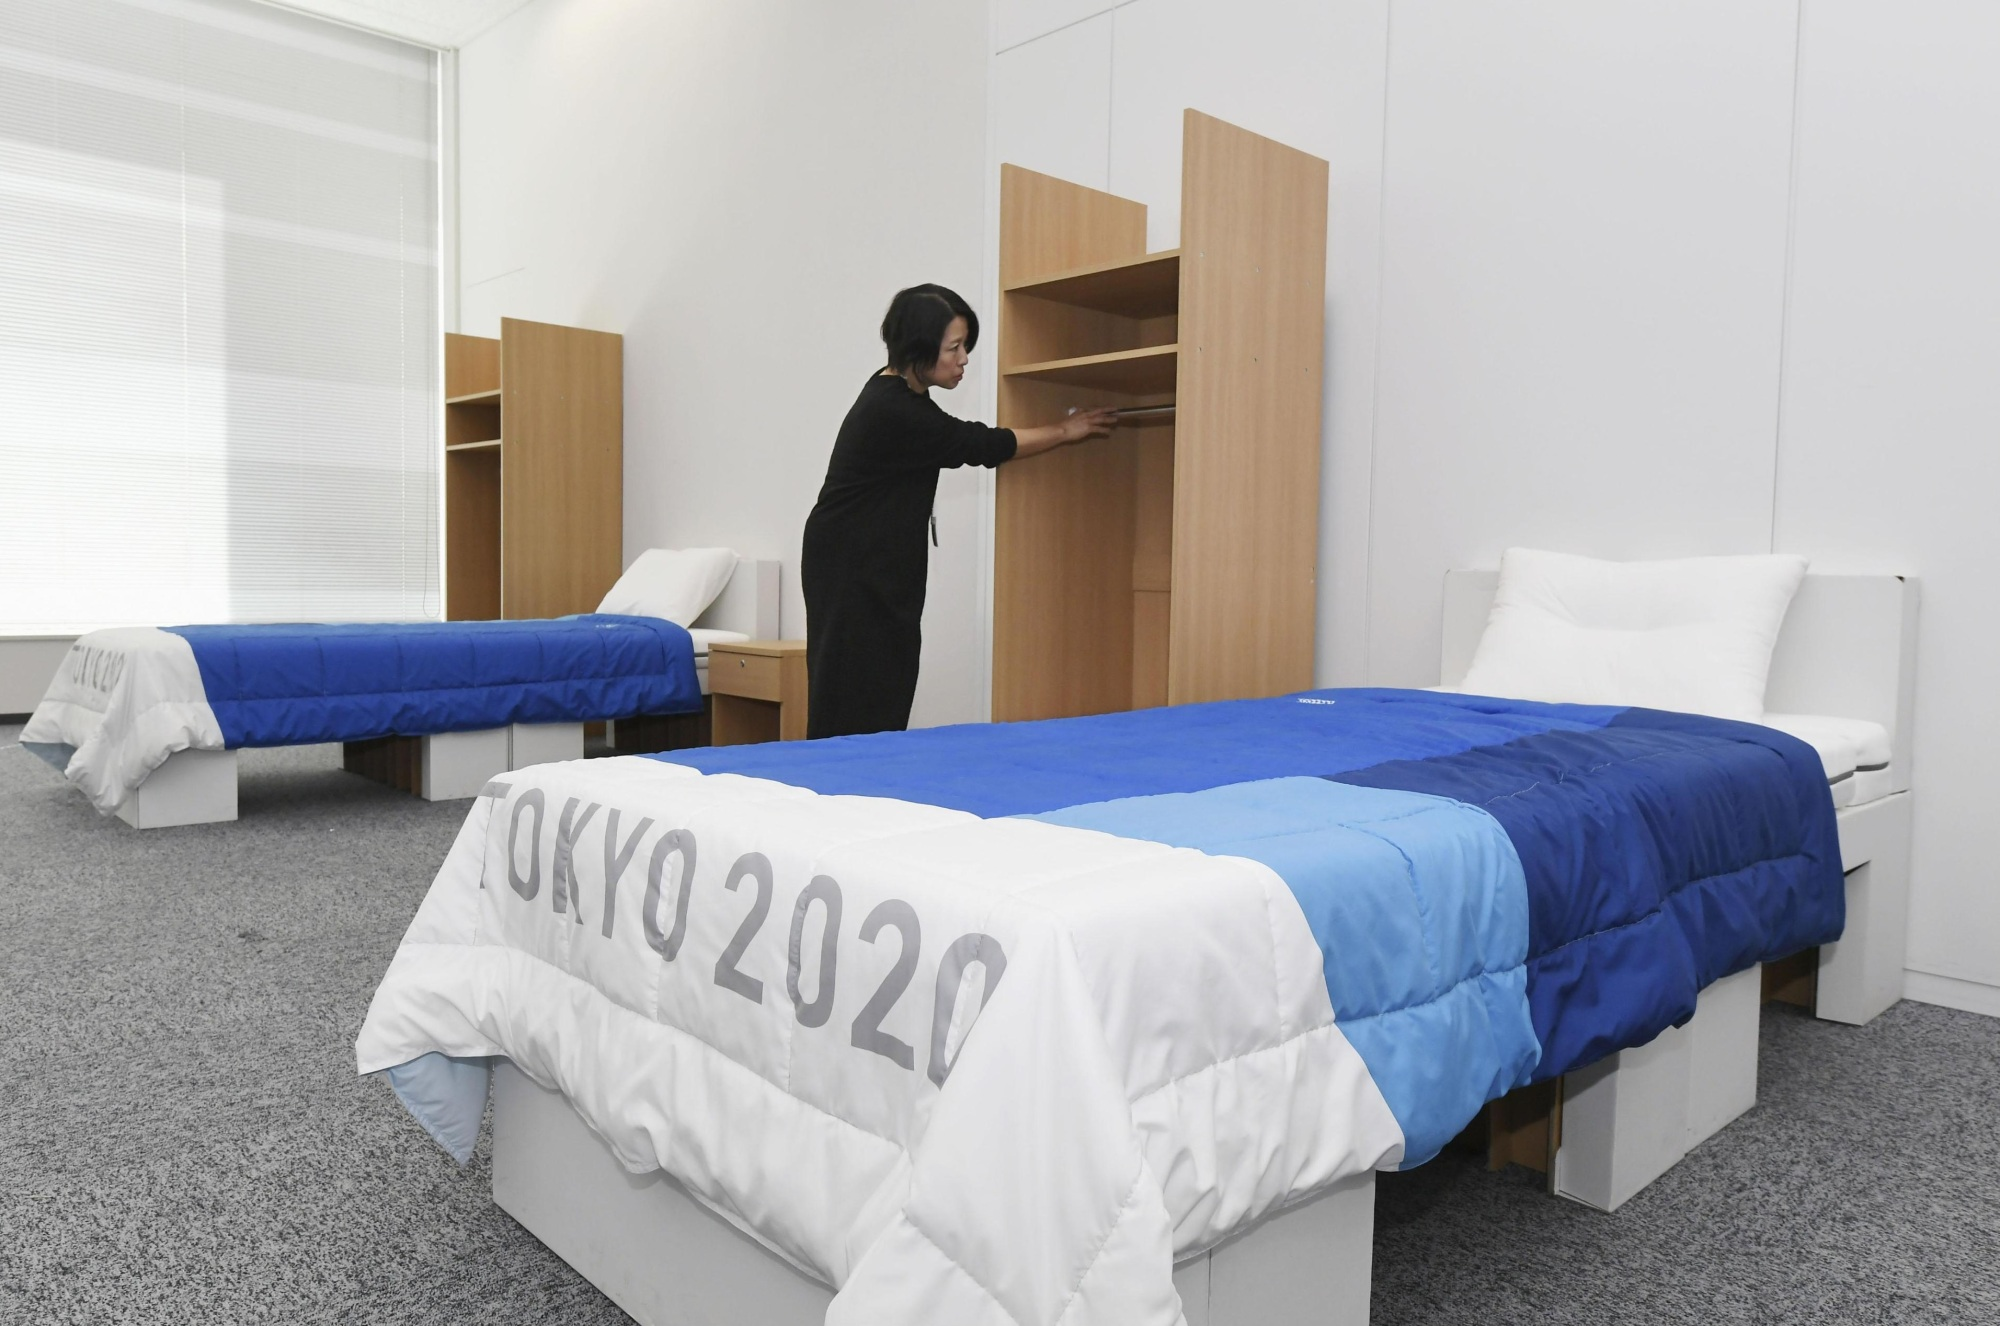 A bedroom in the athletes' village for the 2020 Tokyo Olympics is displayed to the media on Thursday. | KYODO